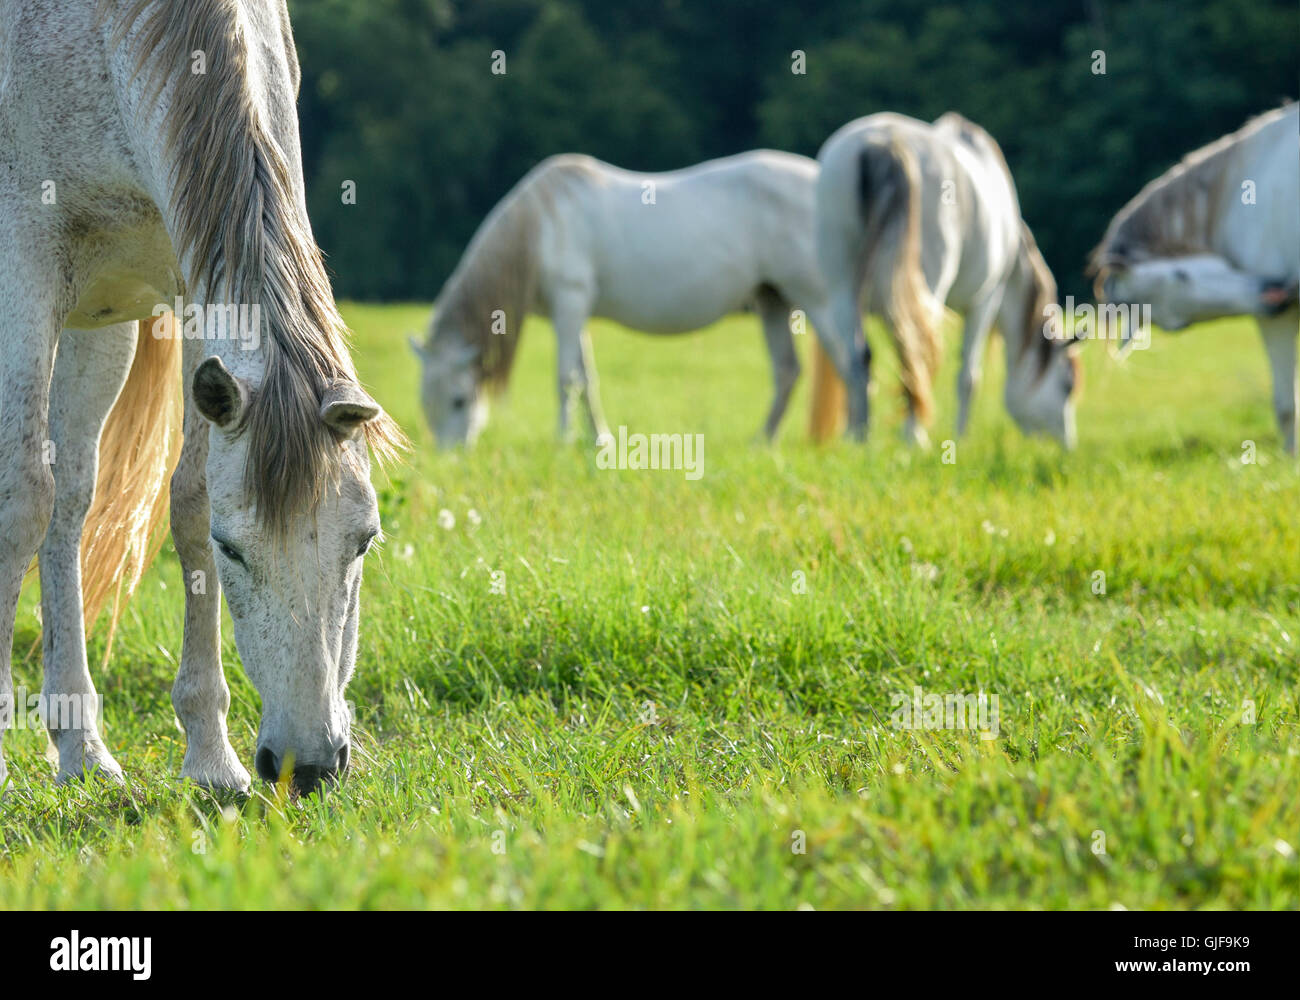 Andalusian horse mares grazing in lush green grass pasture - Stock Image